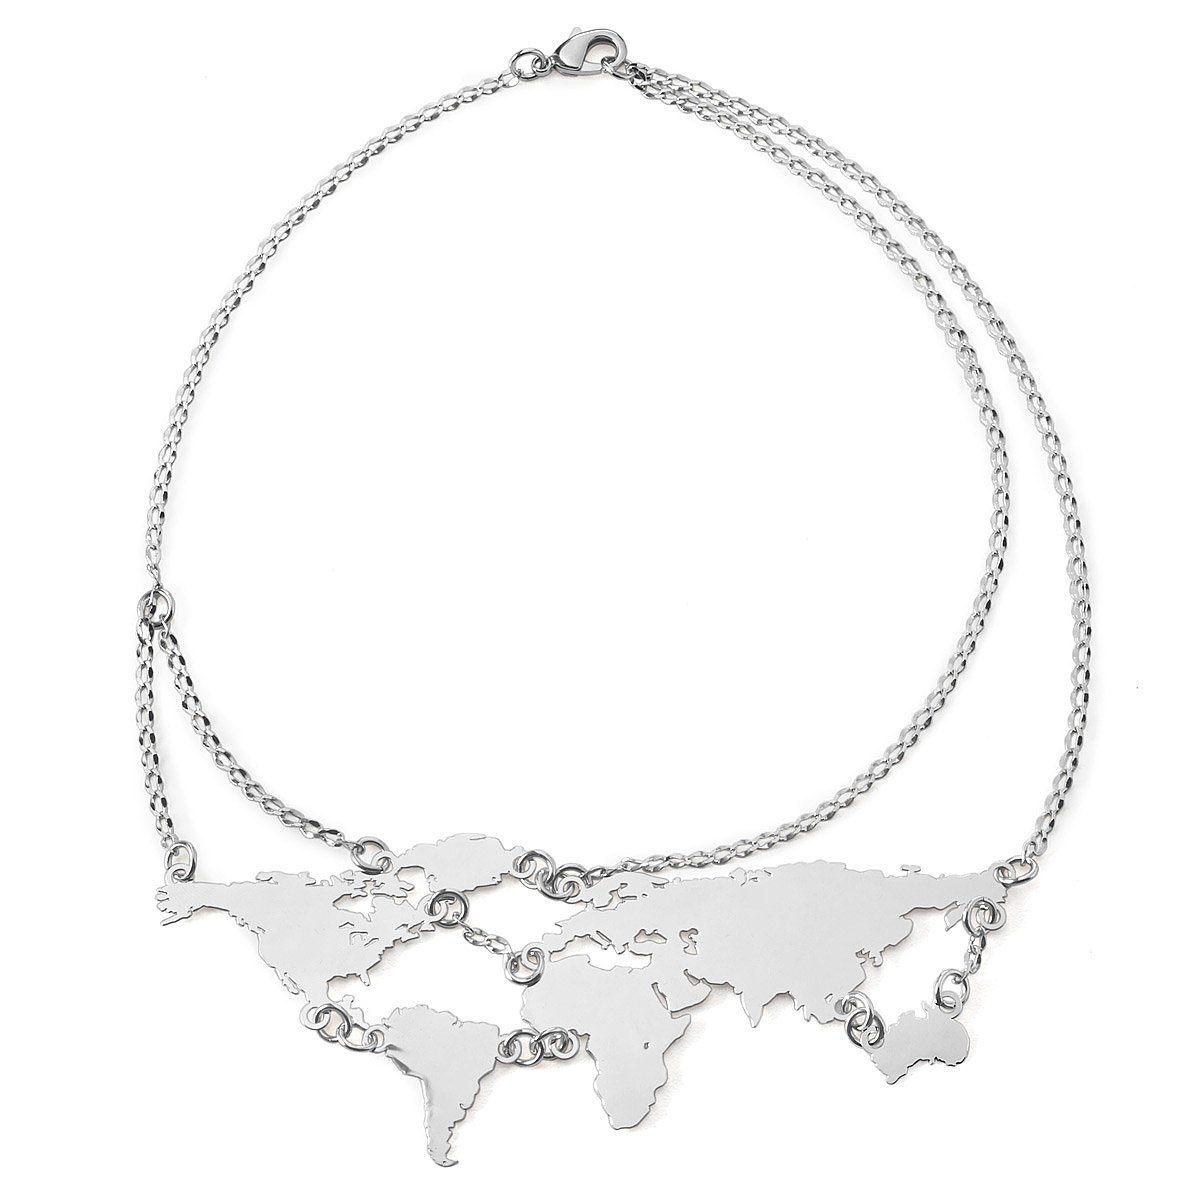 World Links Necklace Silver Silver World Map Jewelry - Chicago map necklace